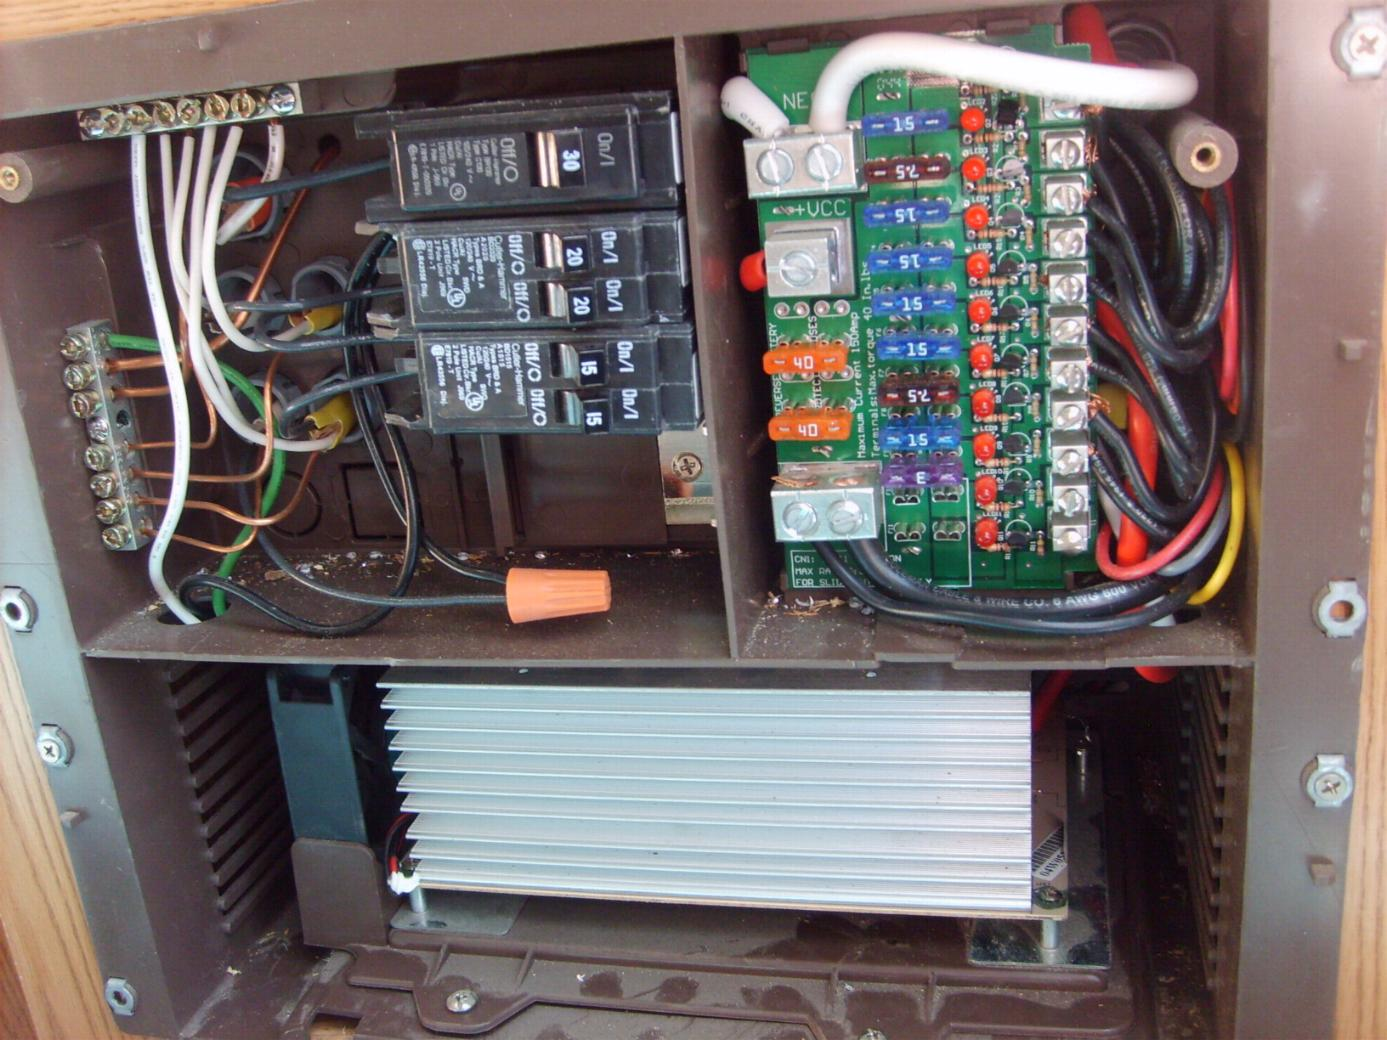 12v circuit breaker wiring diagram rv slide trailer 120v works all lights etc but disconnect and